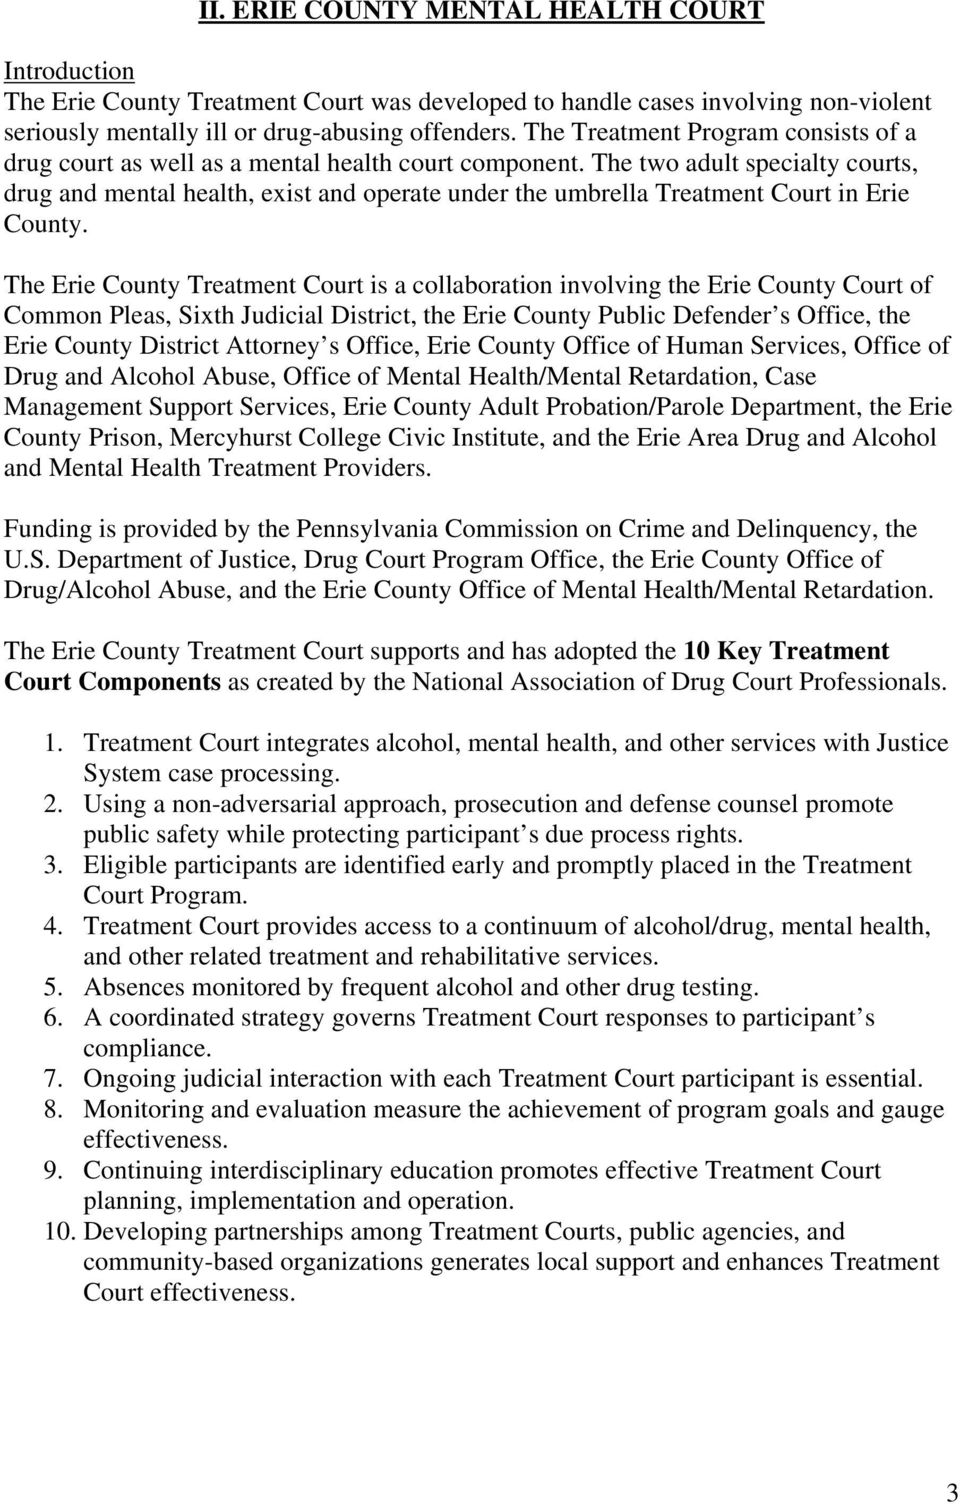 The two adult specialty courts, drug and mental health, exist and operate under the umbrella Treatment Court in Erie County.